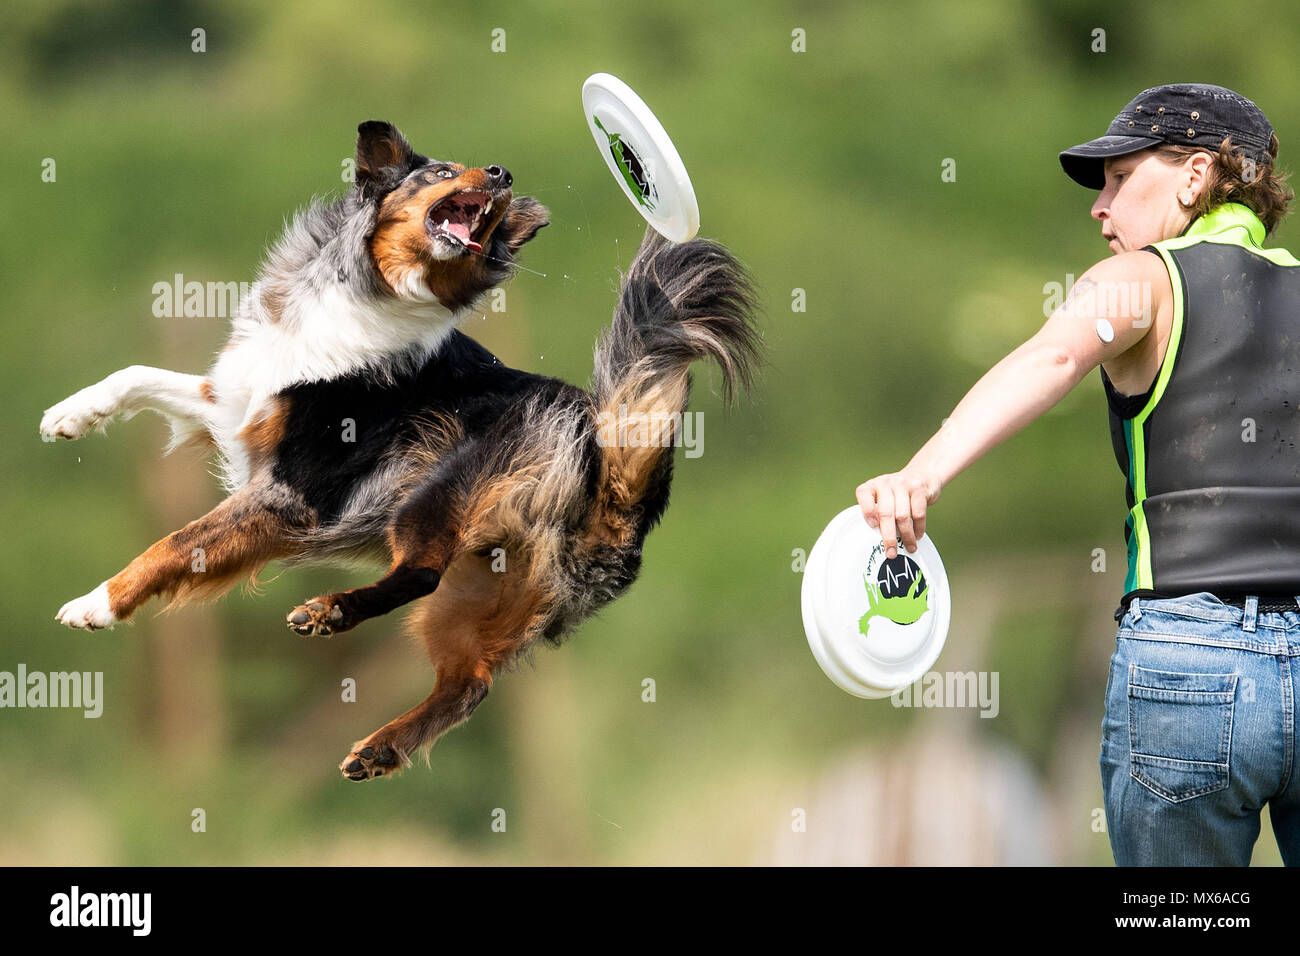 03 May 2018, Germany, Erftstadt: Verena Koening and her dog Sky taking part in the discipline 'freestyle' at the dog frisbee tournament. The participant throws up to seven frisbees that his dog has to catch. The freestyle event is combined to music. Around 60 particpants from 7 countries take part in the event. Photo: Marius Becker/dpa Stock Photo